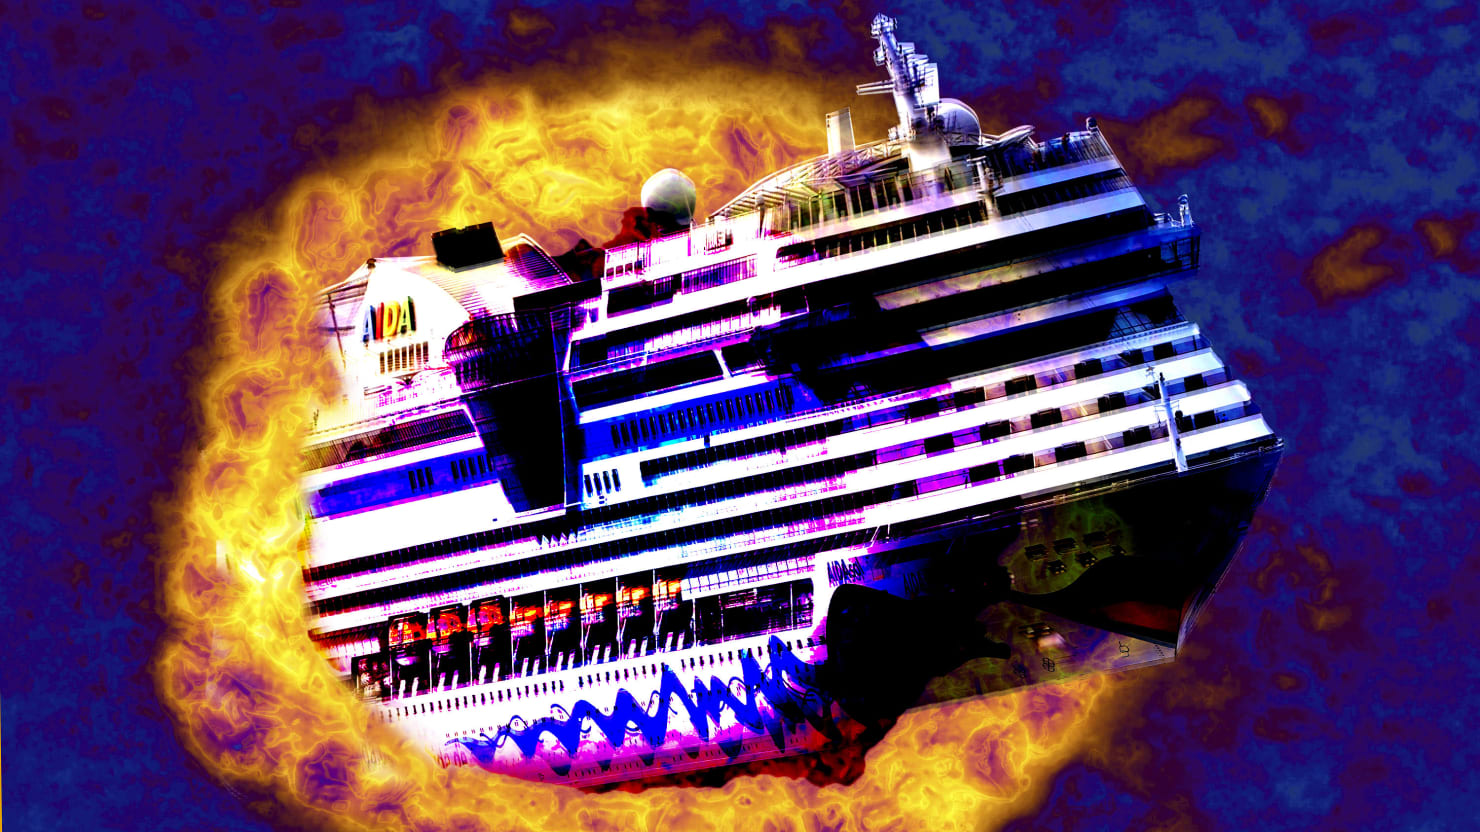 Meet the Insane People Still Planning Cruise Ship Vacations